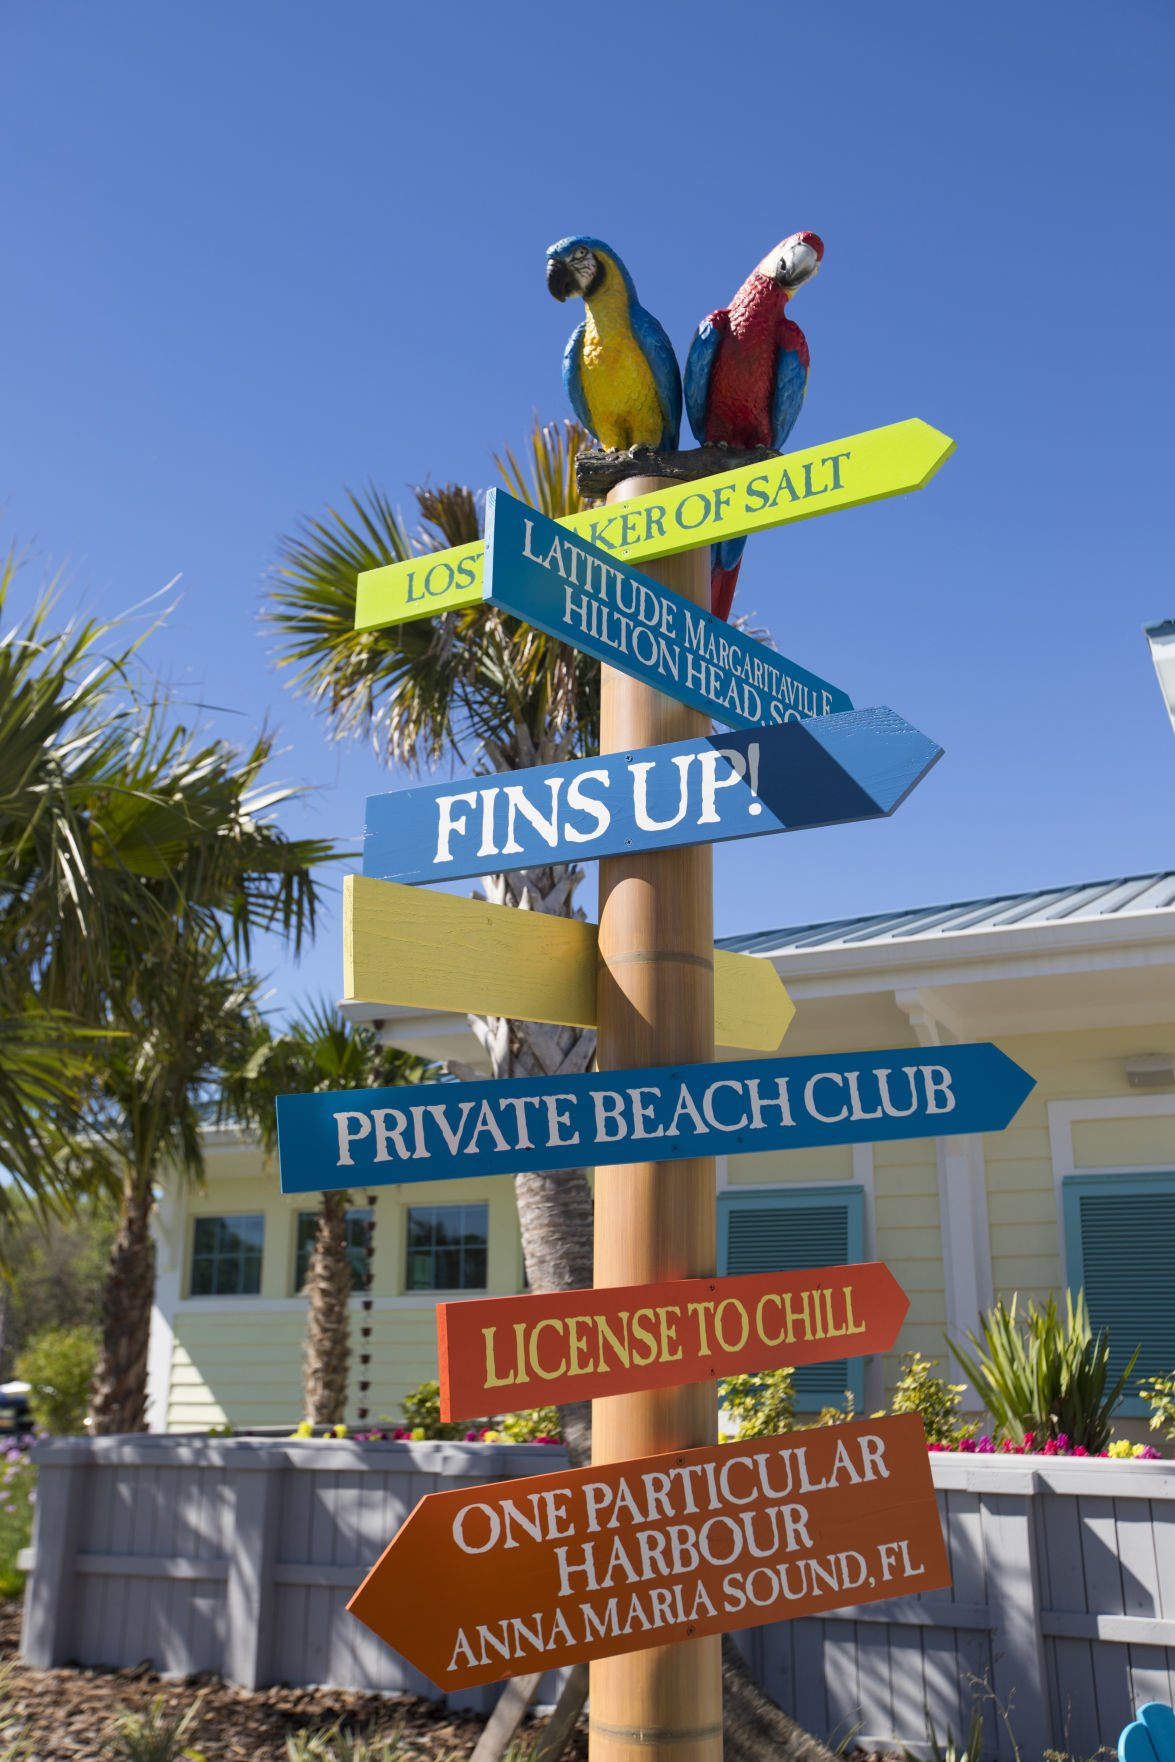 Jimmy Buffett Branded 55 And Older Community A Paradise For Parrotheads National And World Sentinelsource Com